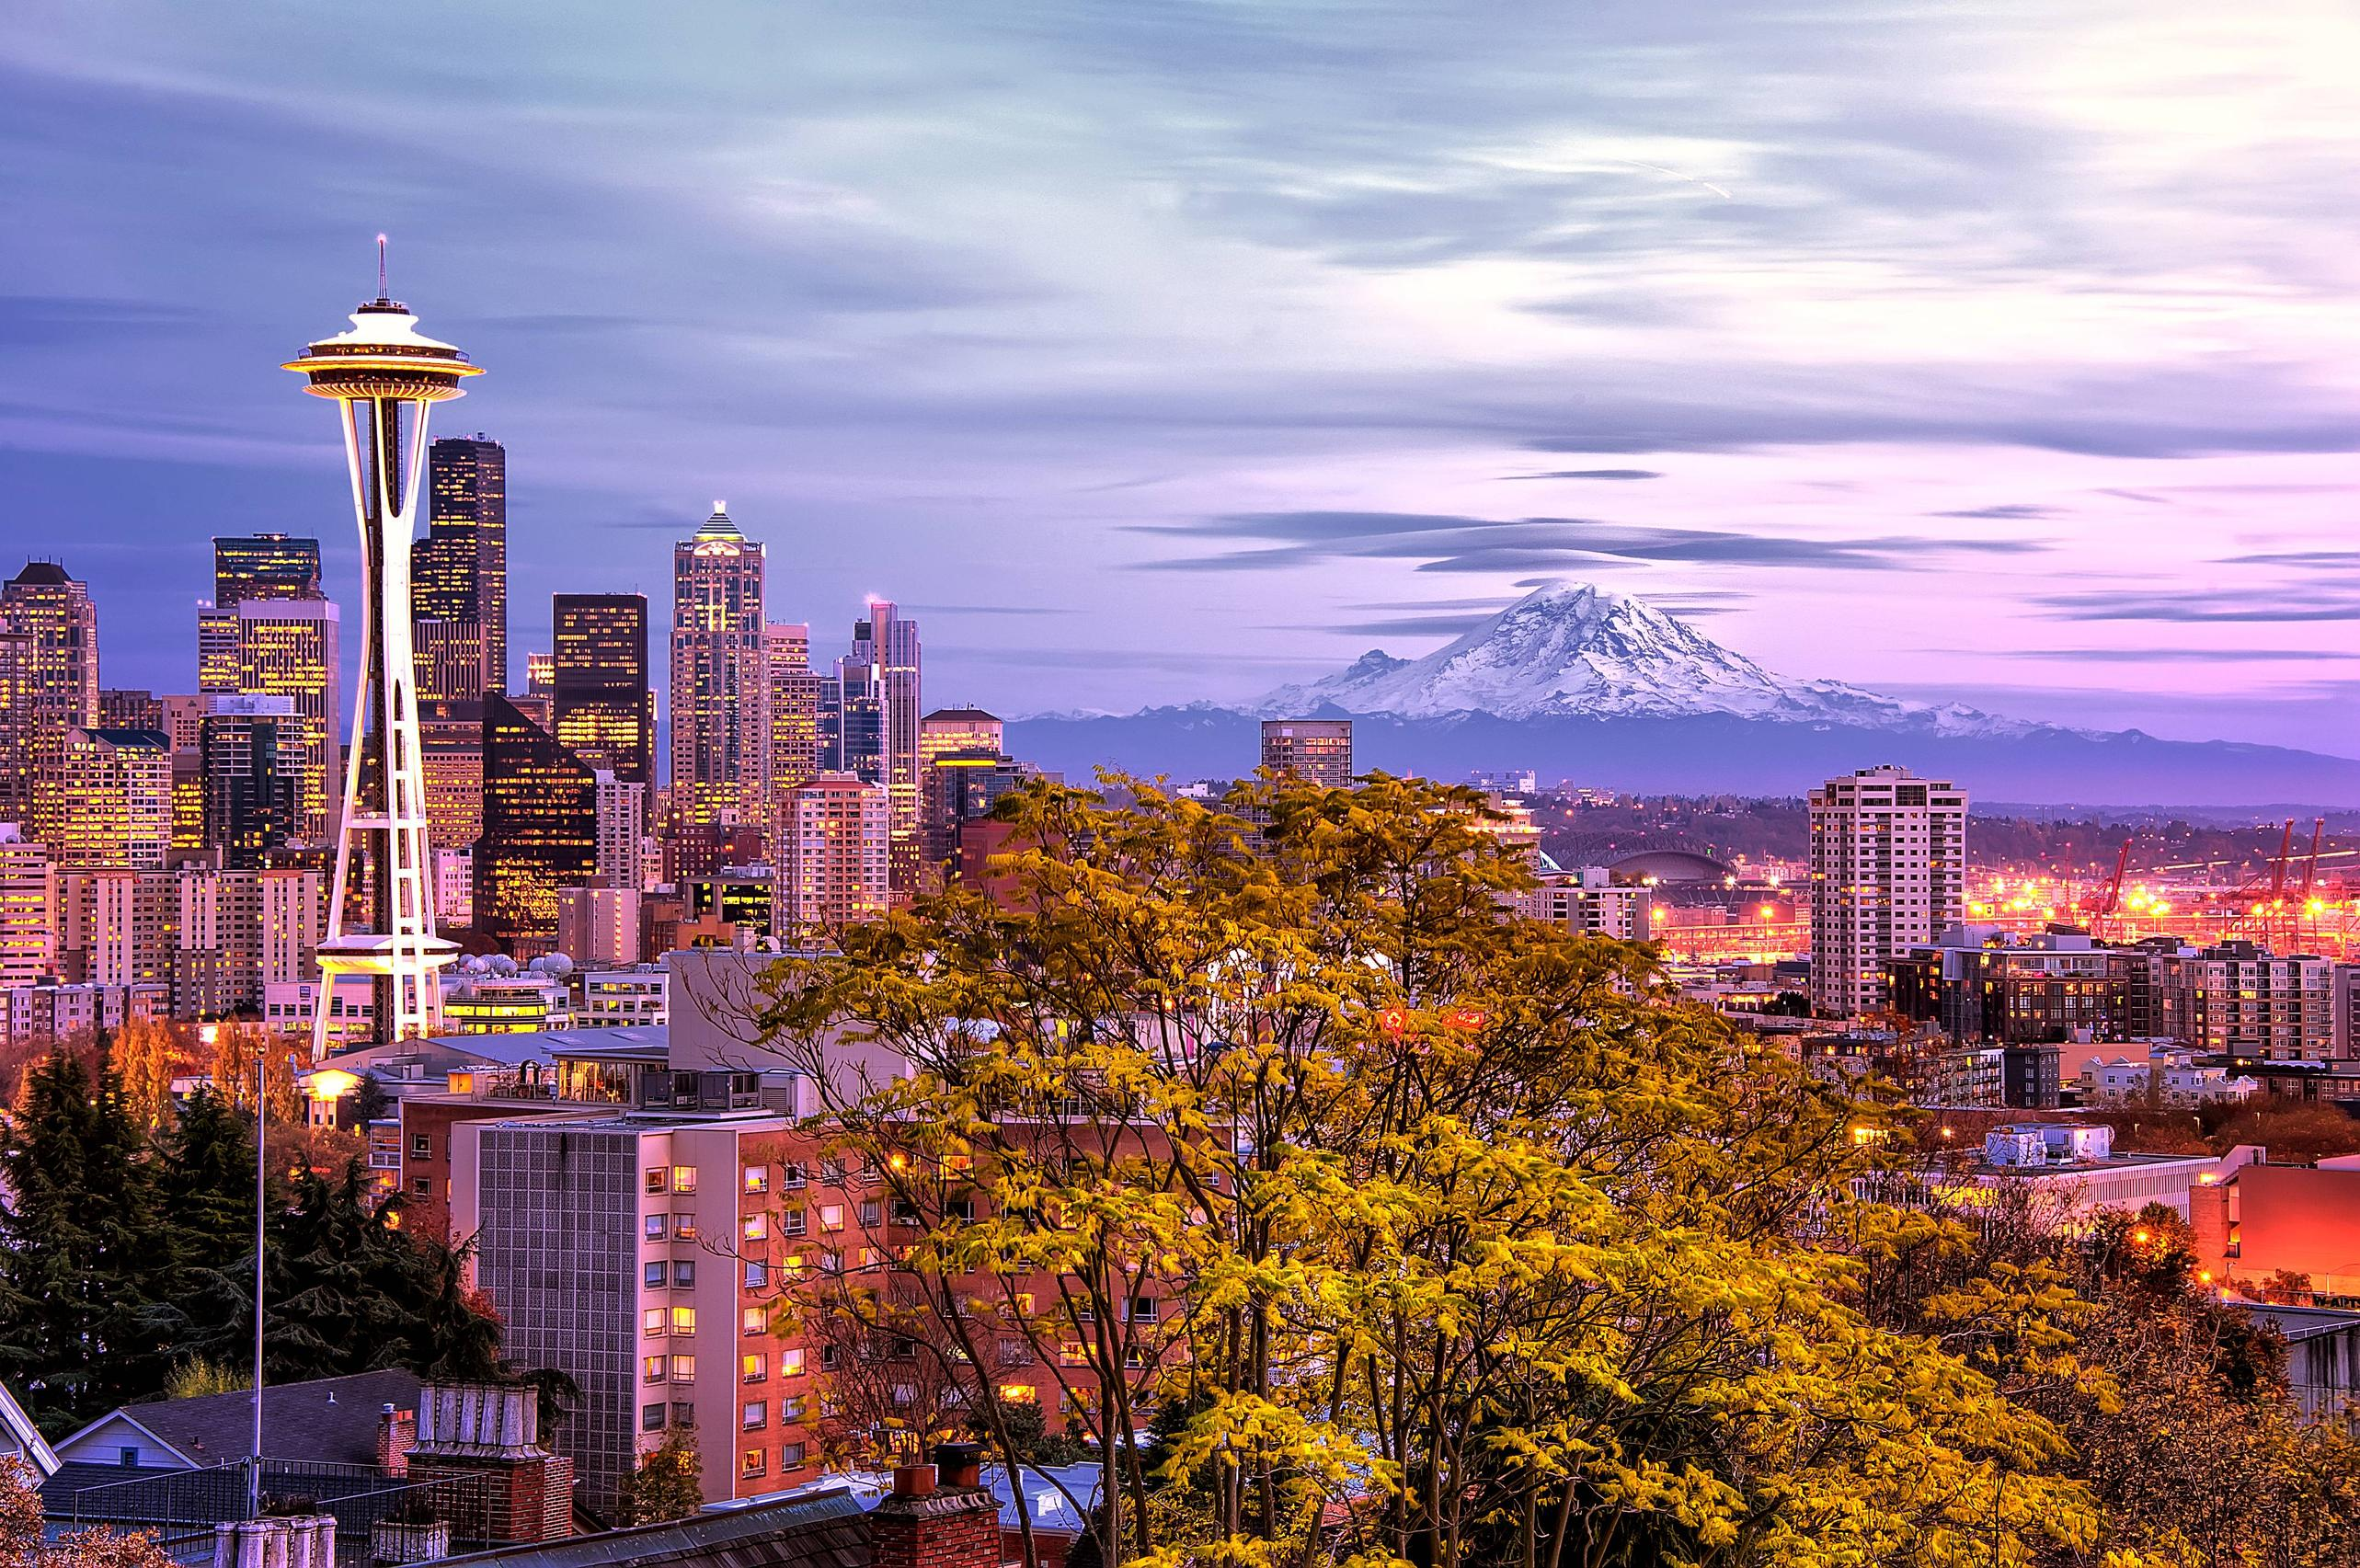 Seattle publications that may be hiring writers and freelance writers in Seattle